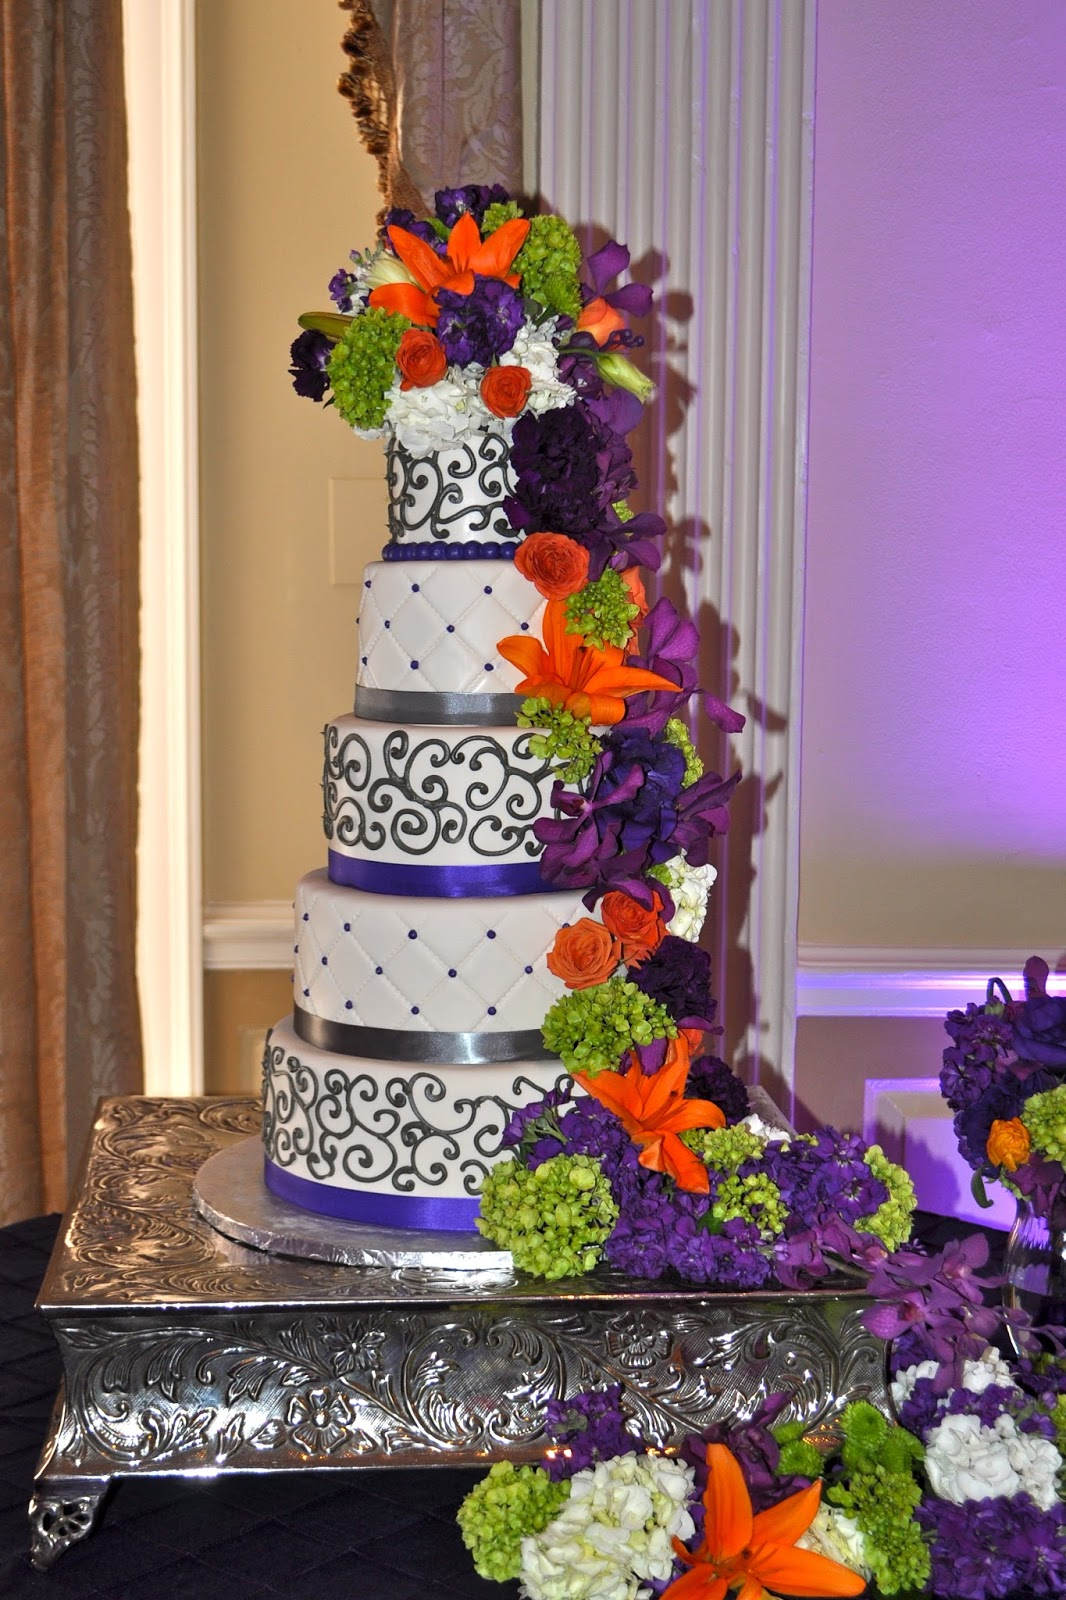 Owner And Cake Artist : Leah s Sweet Treats: Custom Cakes Celebration Cakes ...